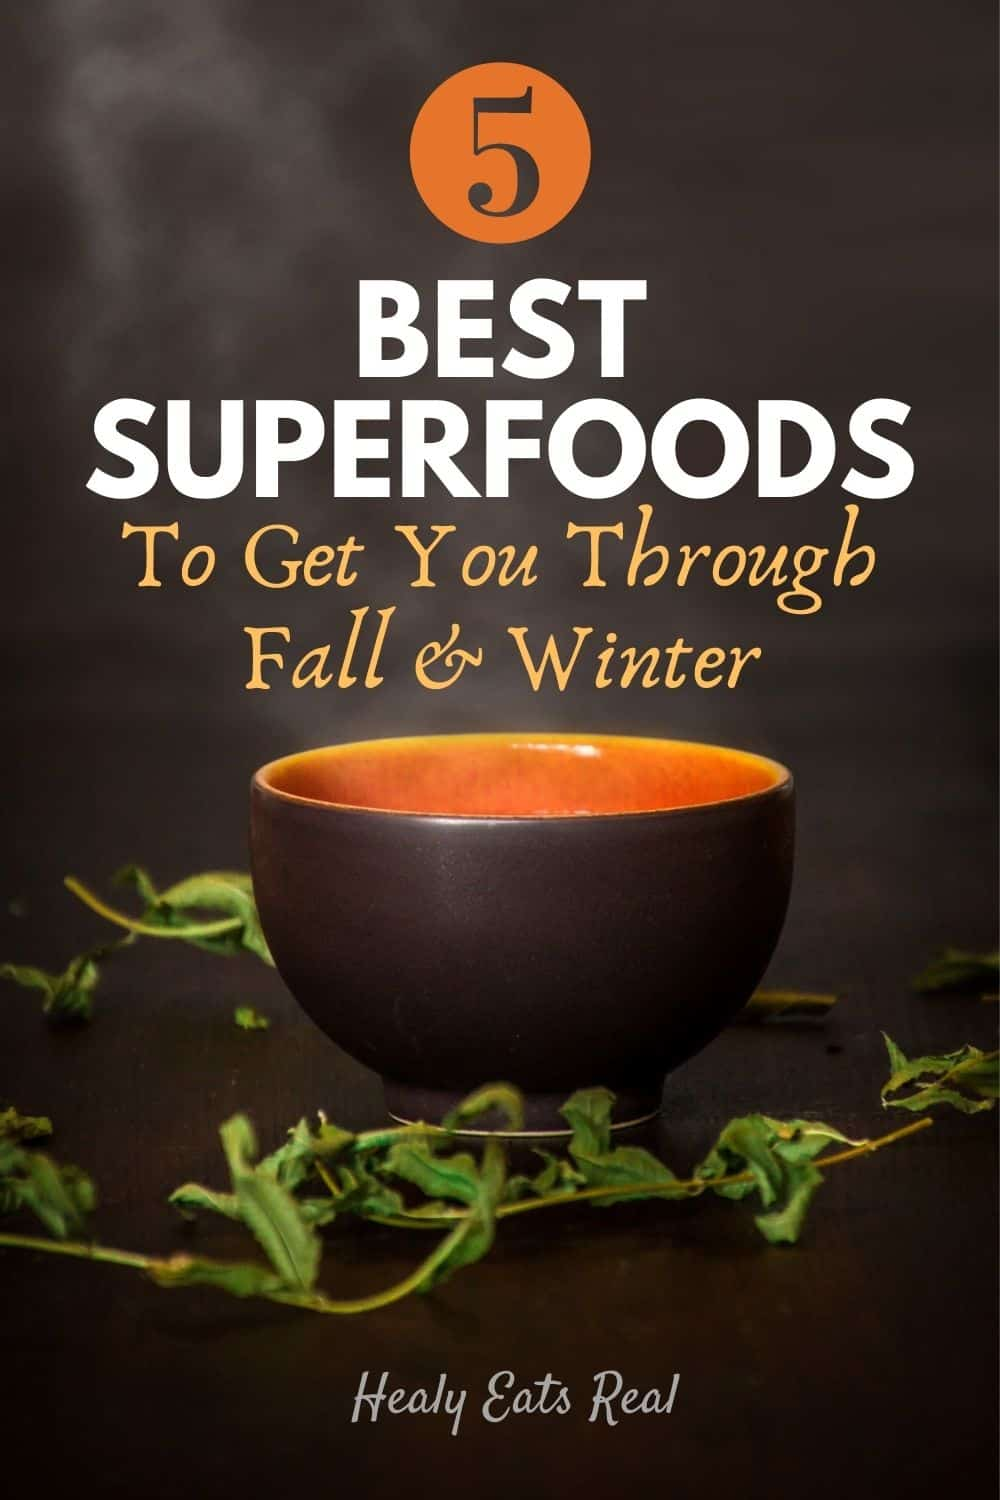 5 Best Superfoods to Get You Through Fall & Winter